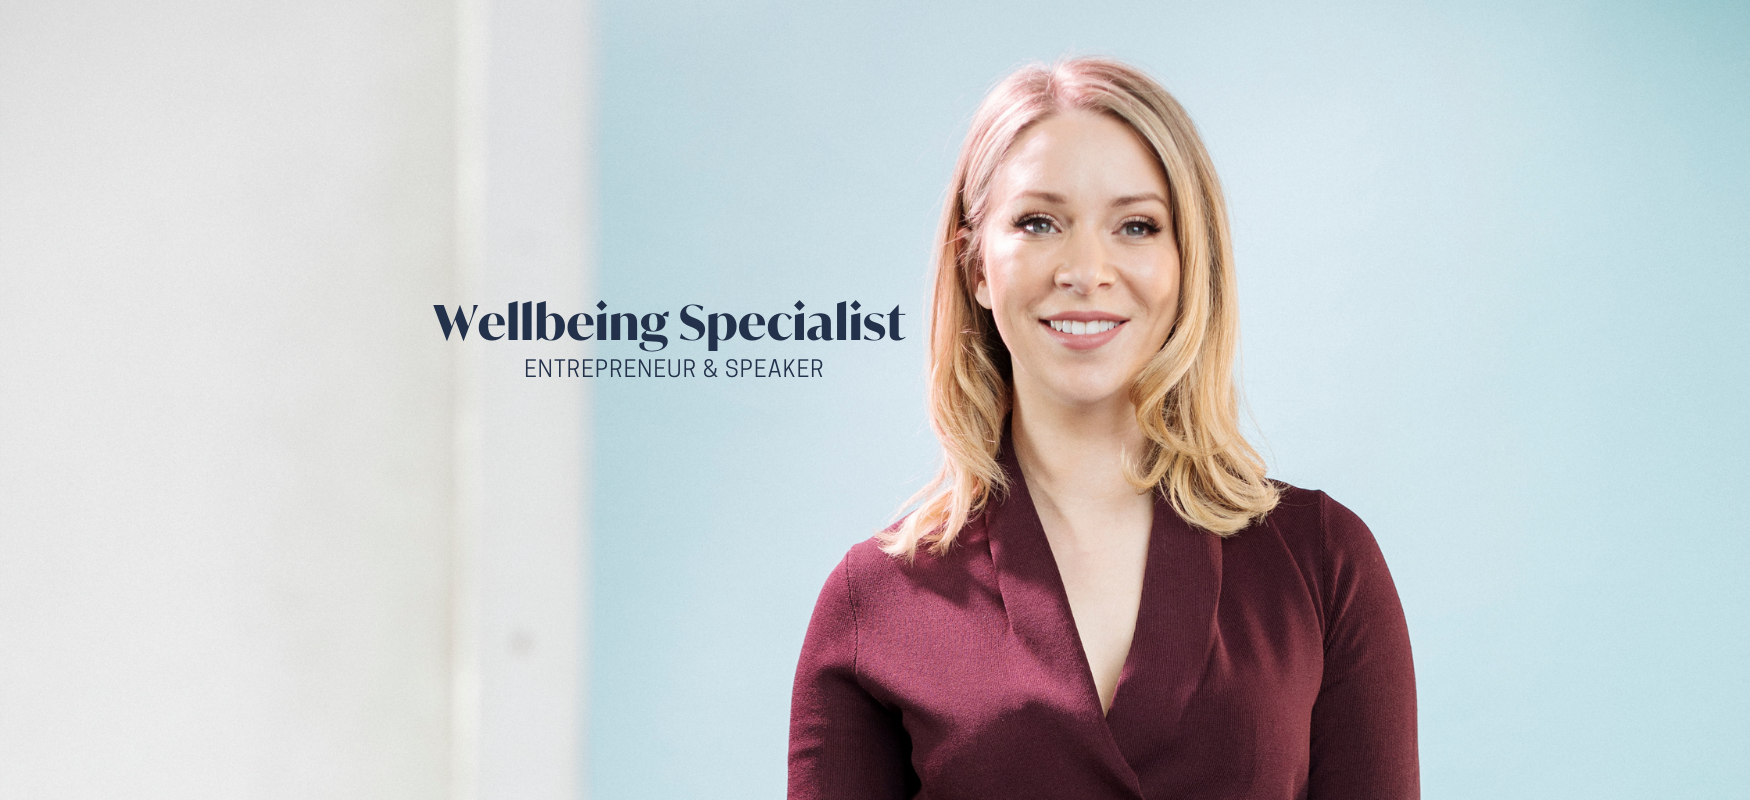 Bethany Ainsley, Wellbeing, Wellbeing Specialist, OptiMe, ActivCare, Nuvo, Speaker, Author